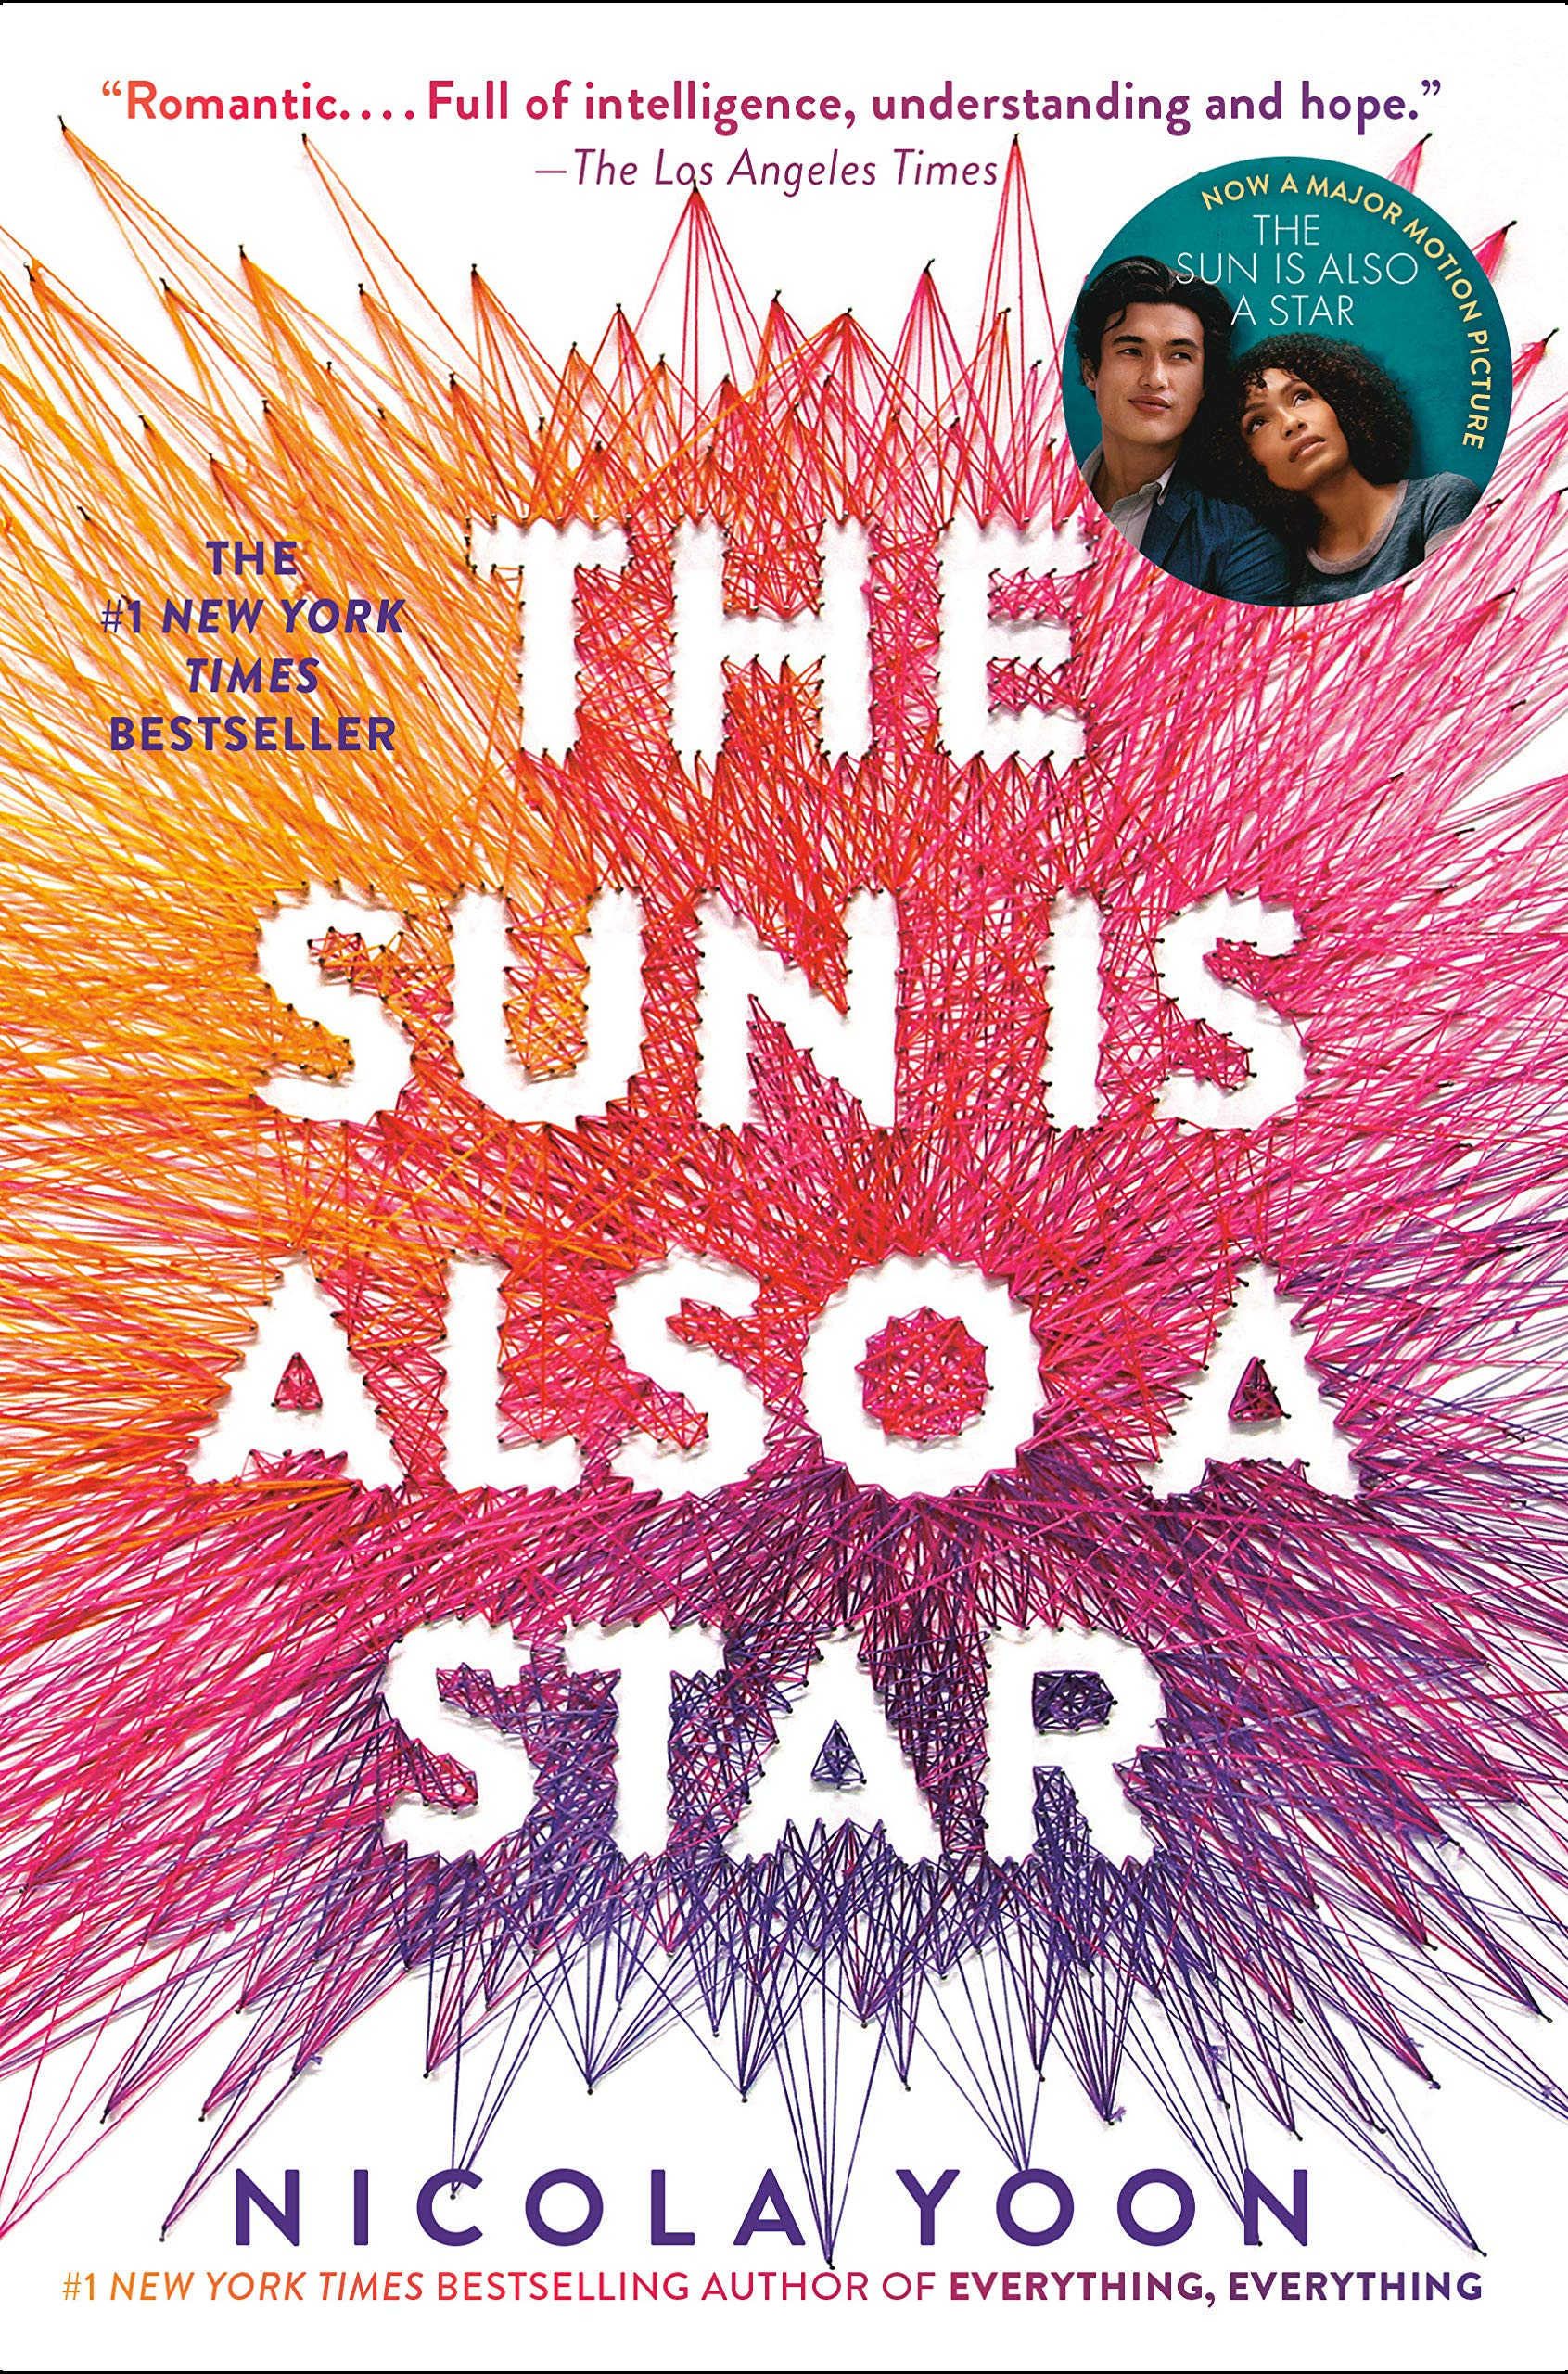 Amazon.com: The Sun Is Also a Star (Yoon, Nicola) (9780553496680 ...